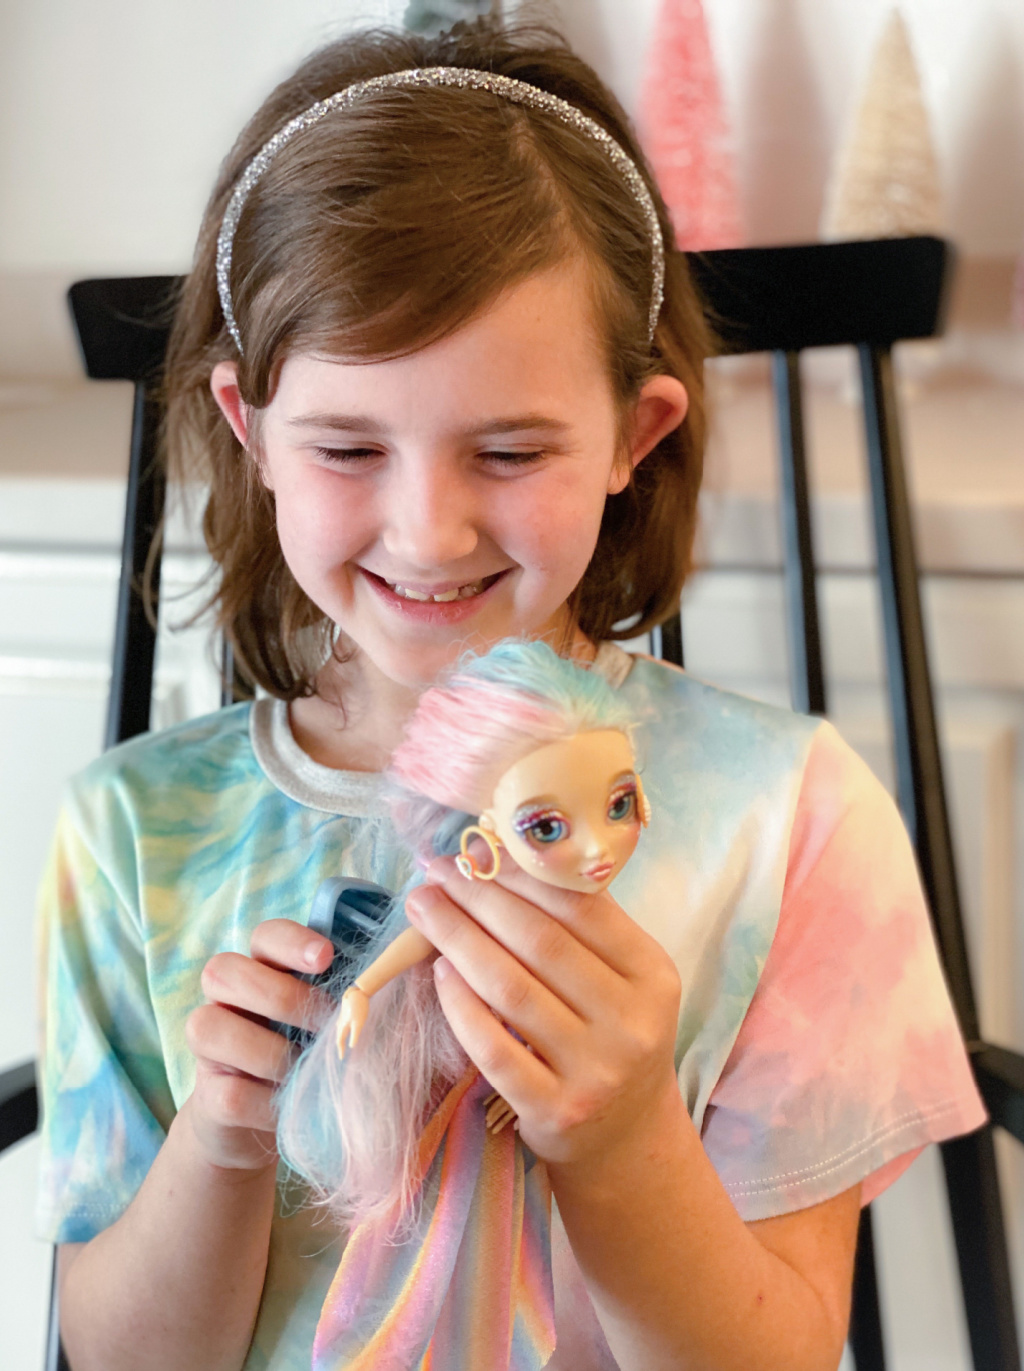 little girl in pastel tie dye outfit brushing pink and blue doll hair